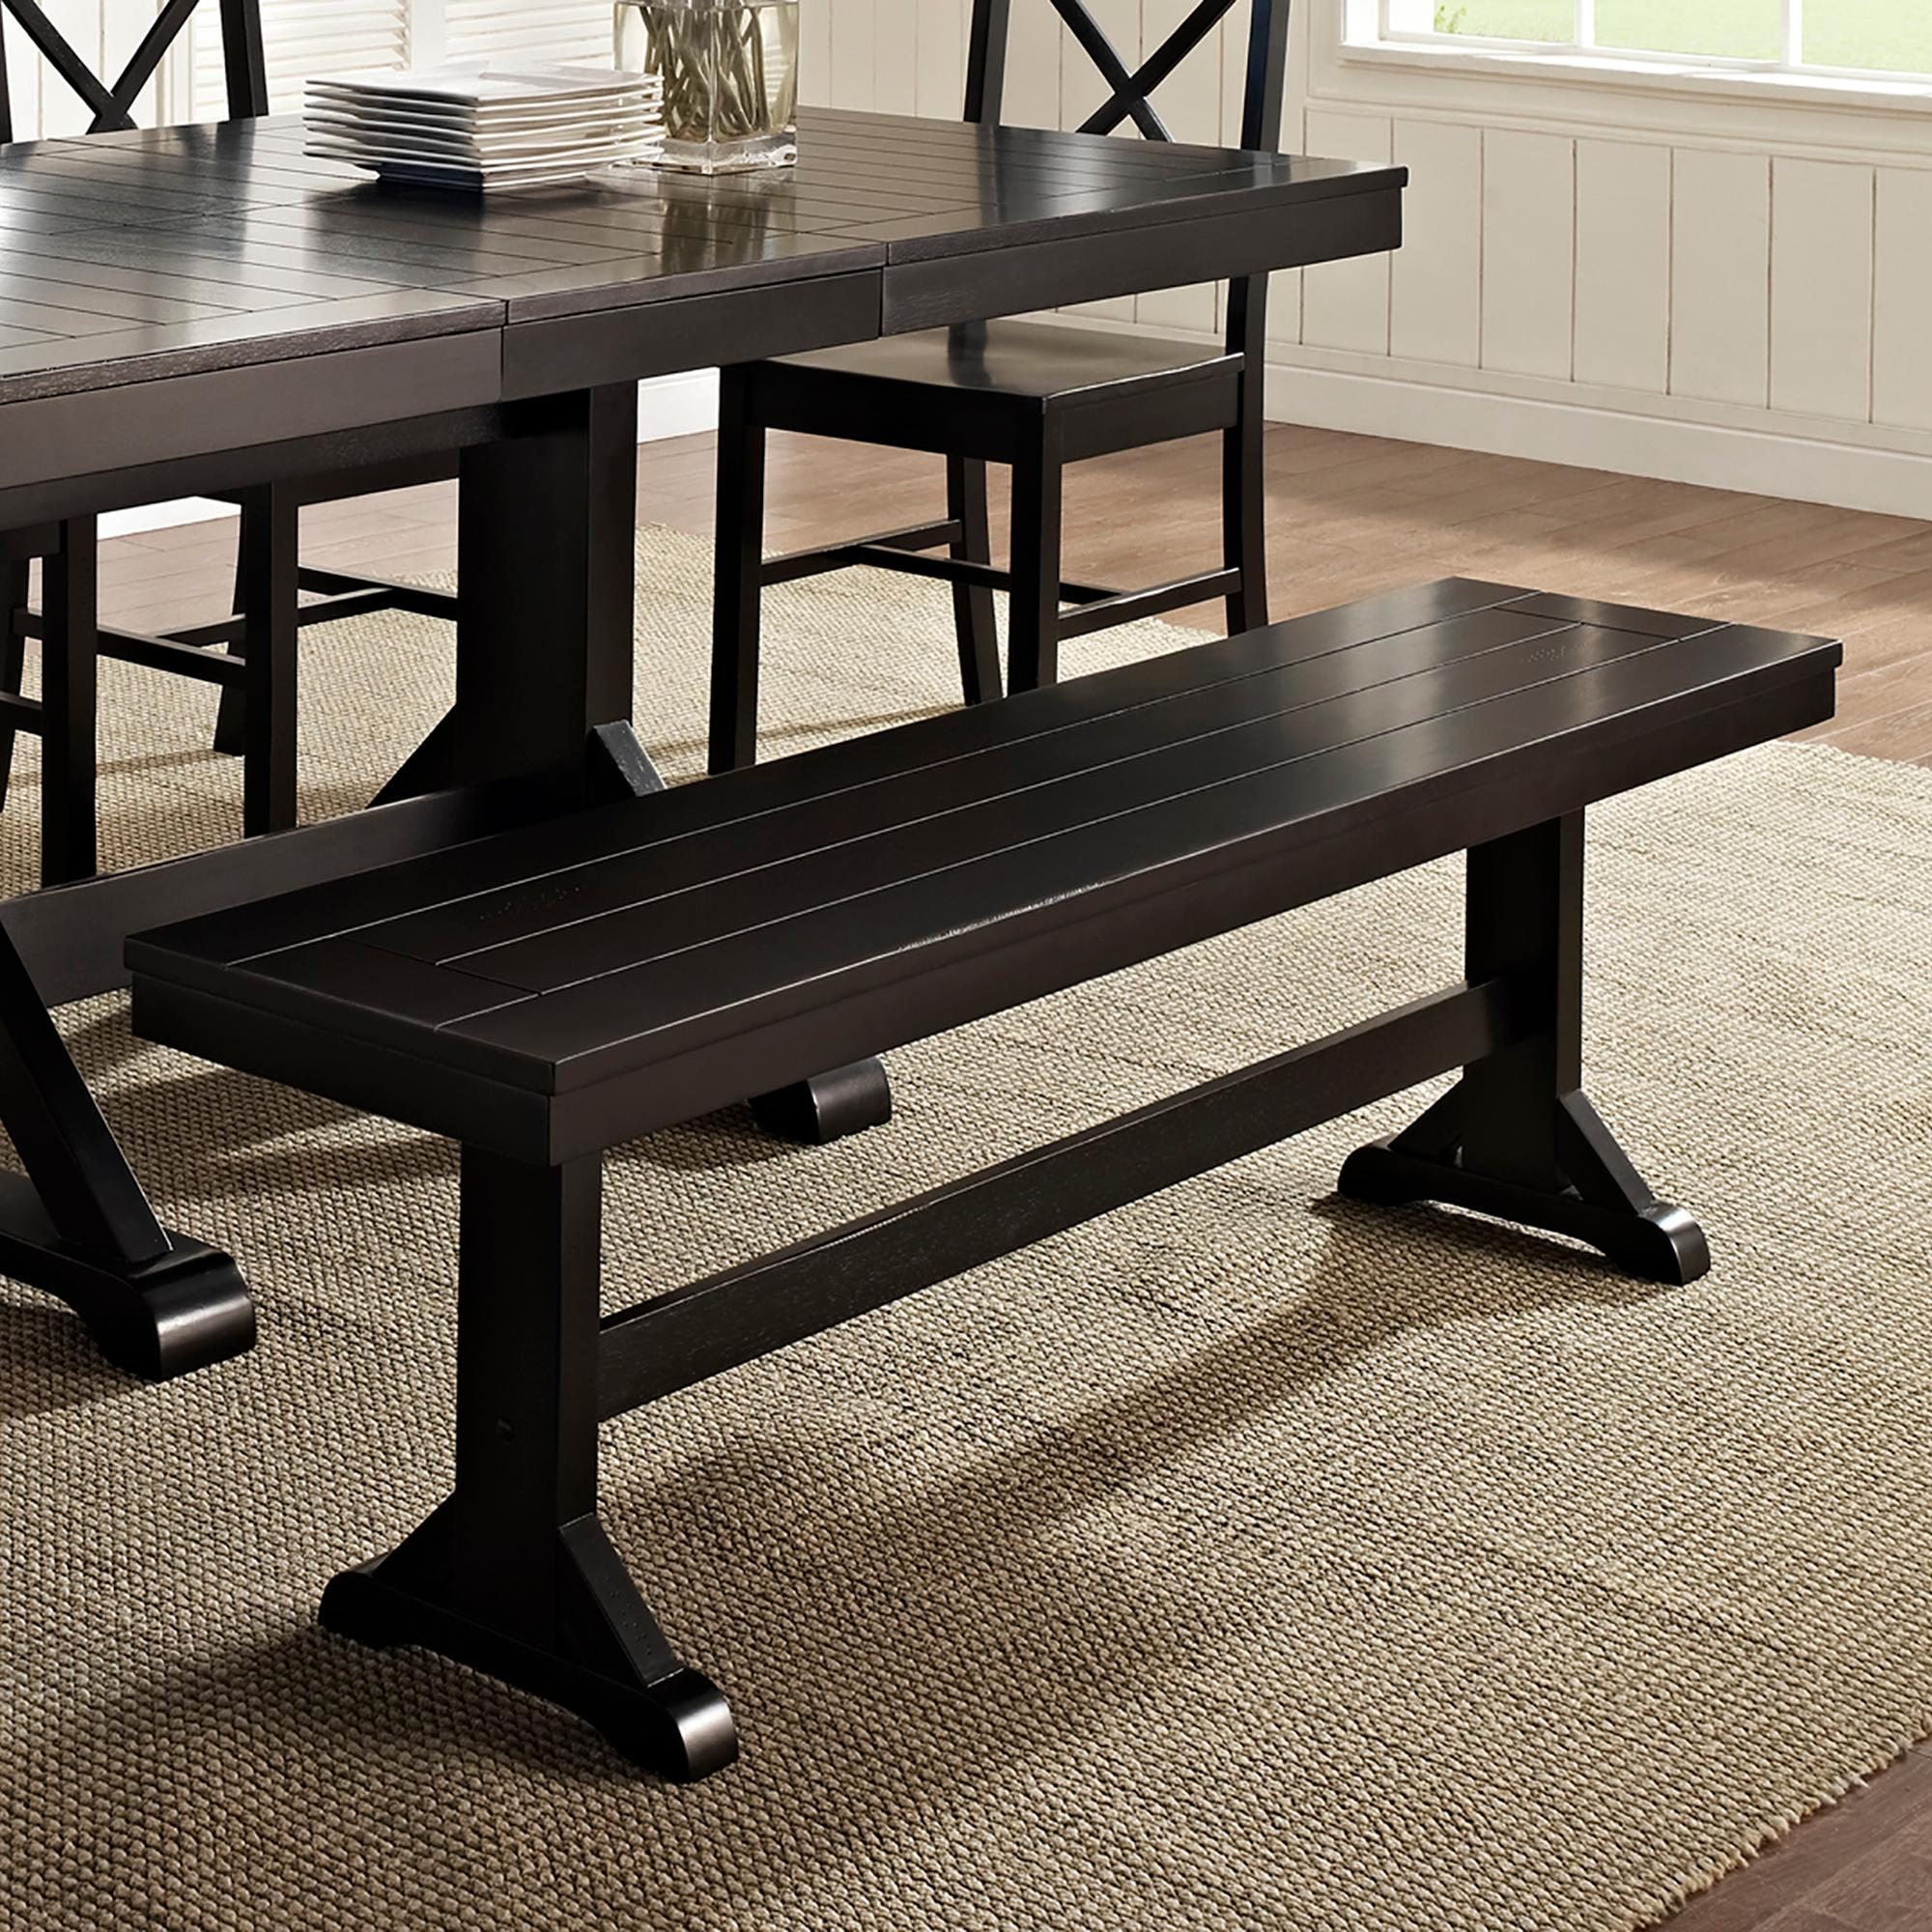 Dining Room Table With Chairs And Bench: WE Furniture Solid Wood Black Dining Bench